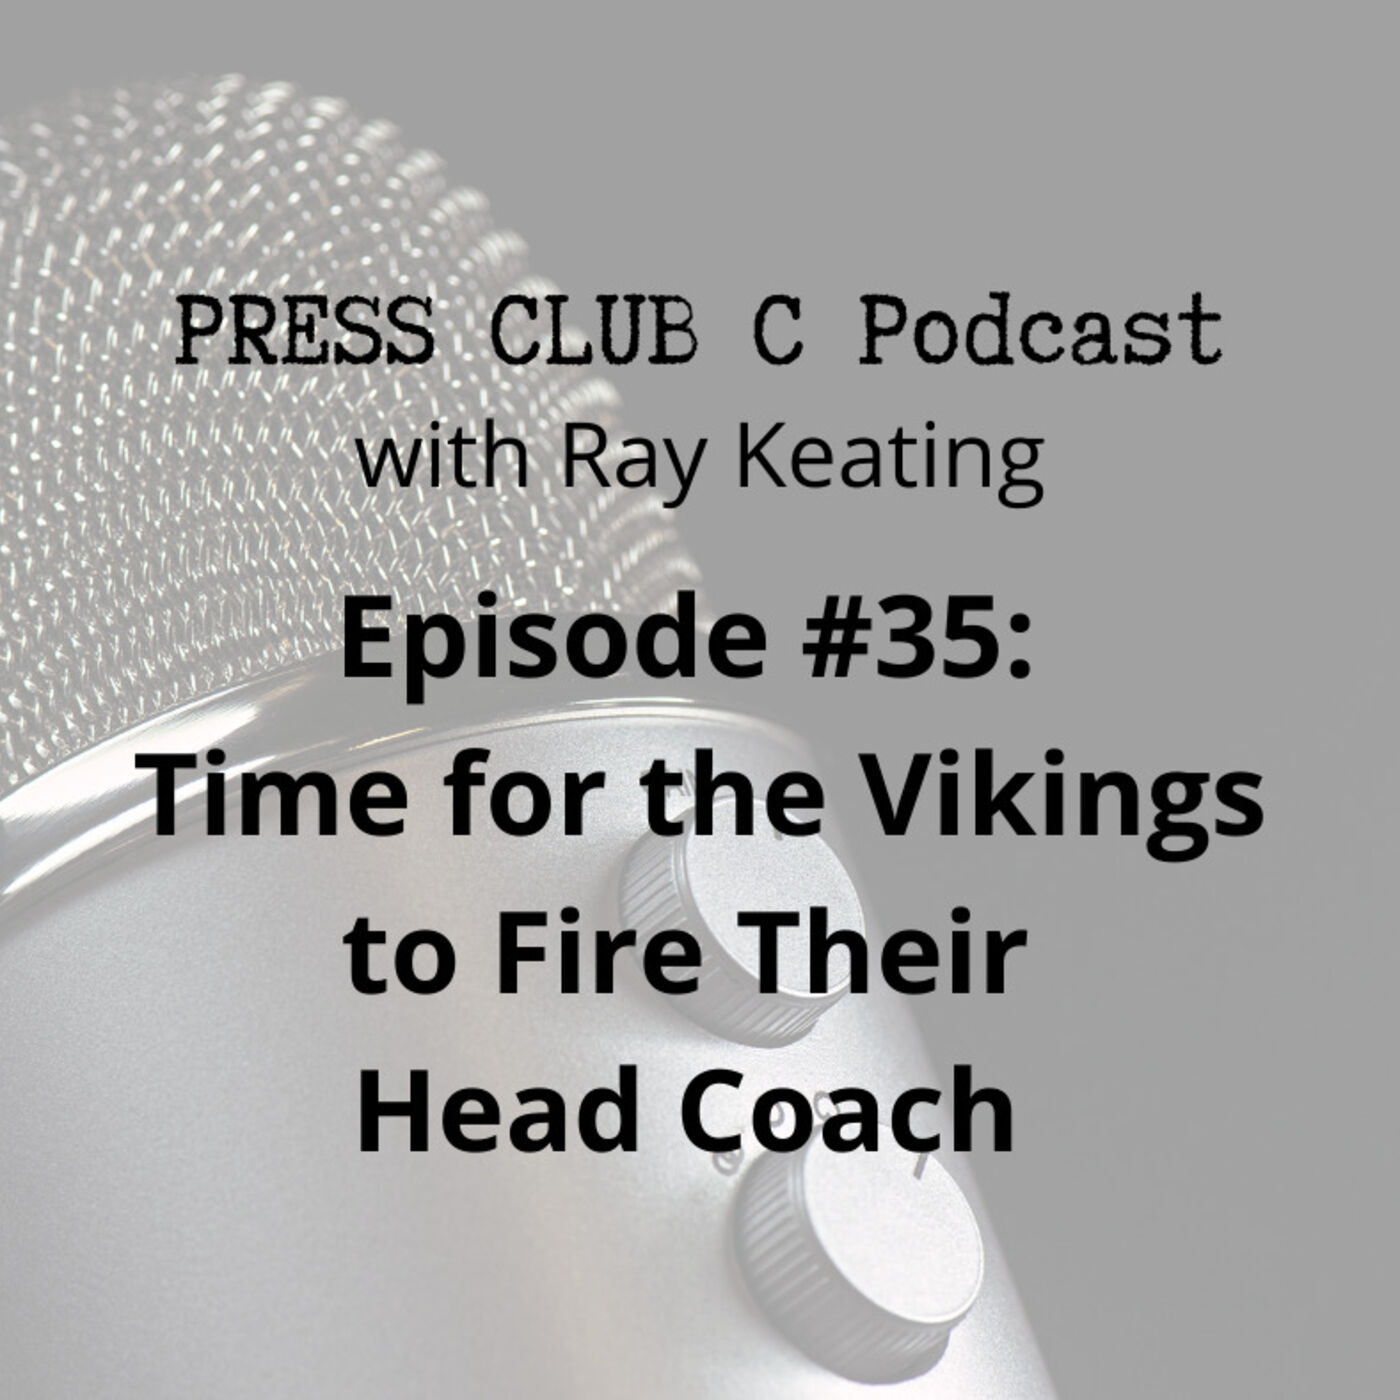 Episode #35: Time for the Vikings to Fire Their Head Coach